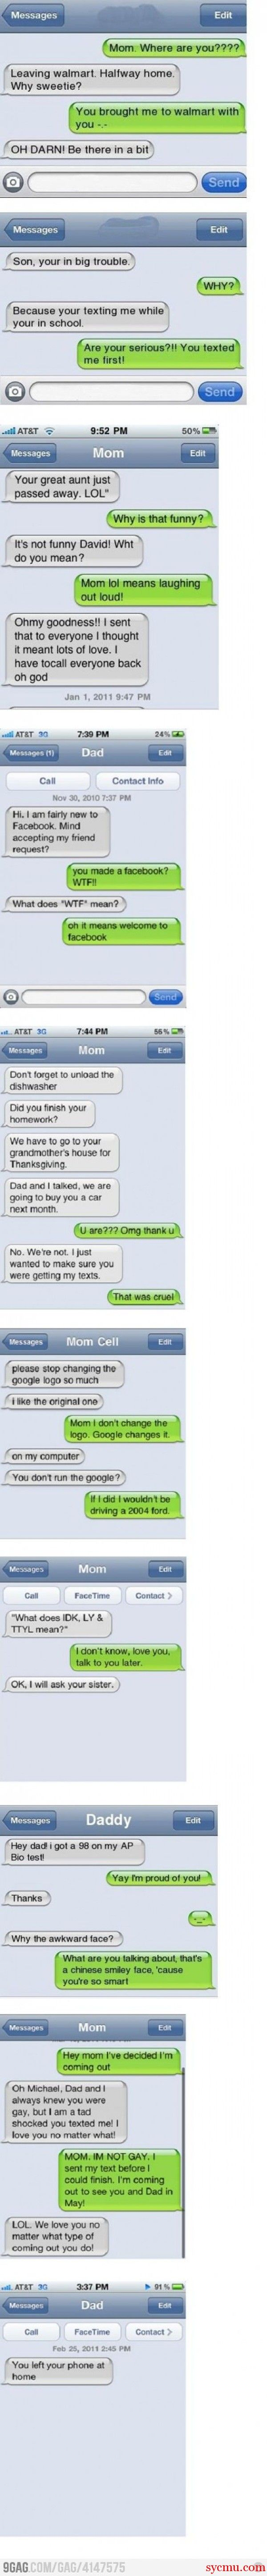 Top 10 Funniest SMS Conversations